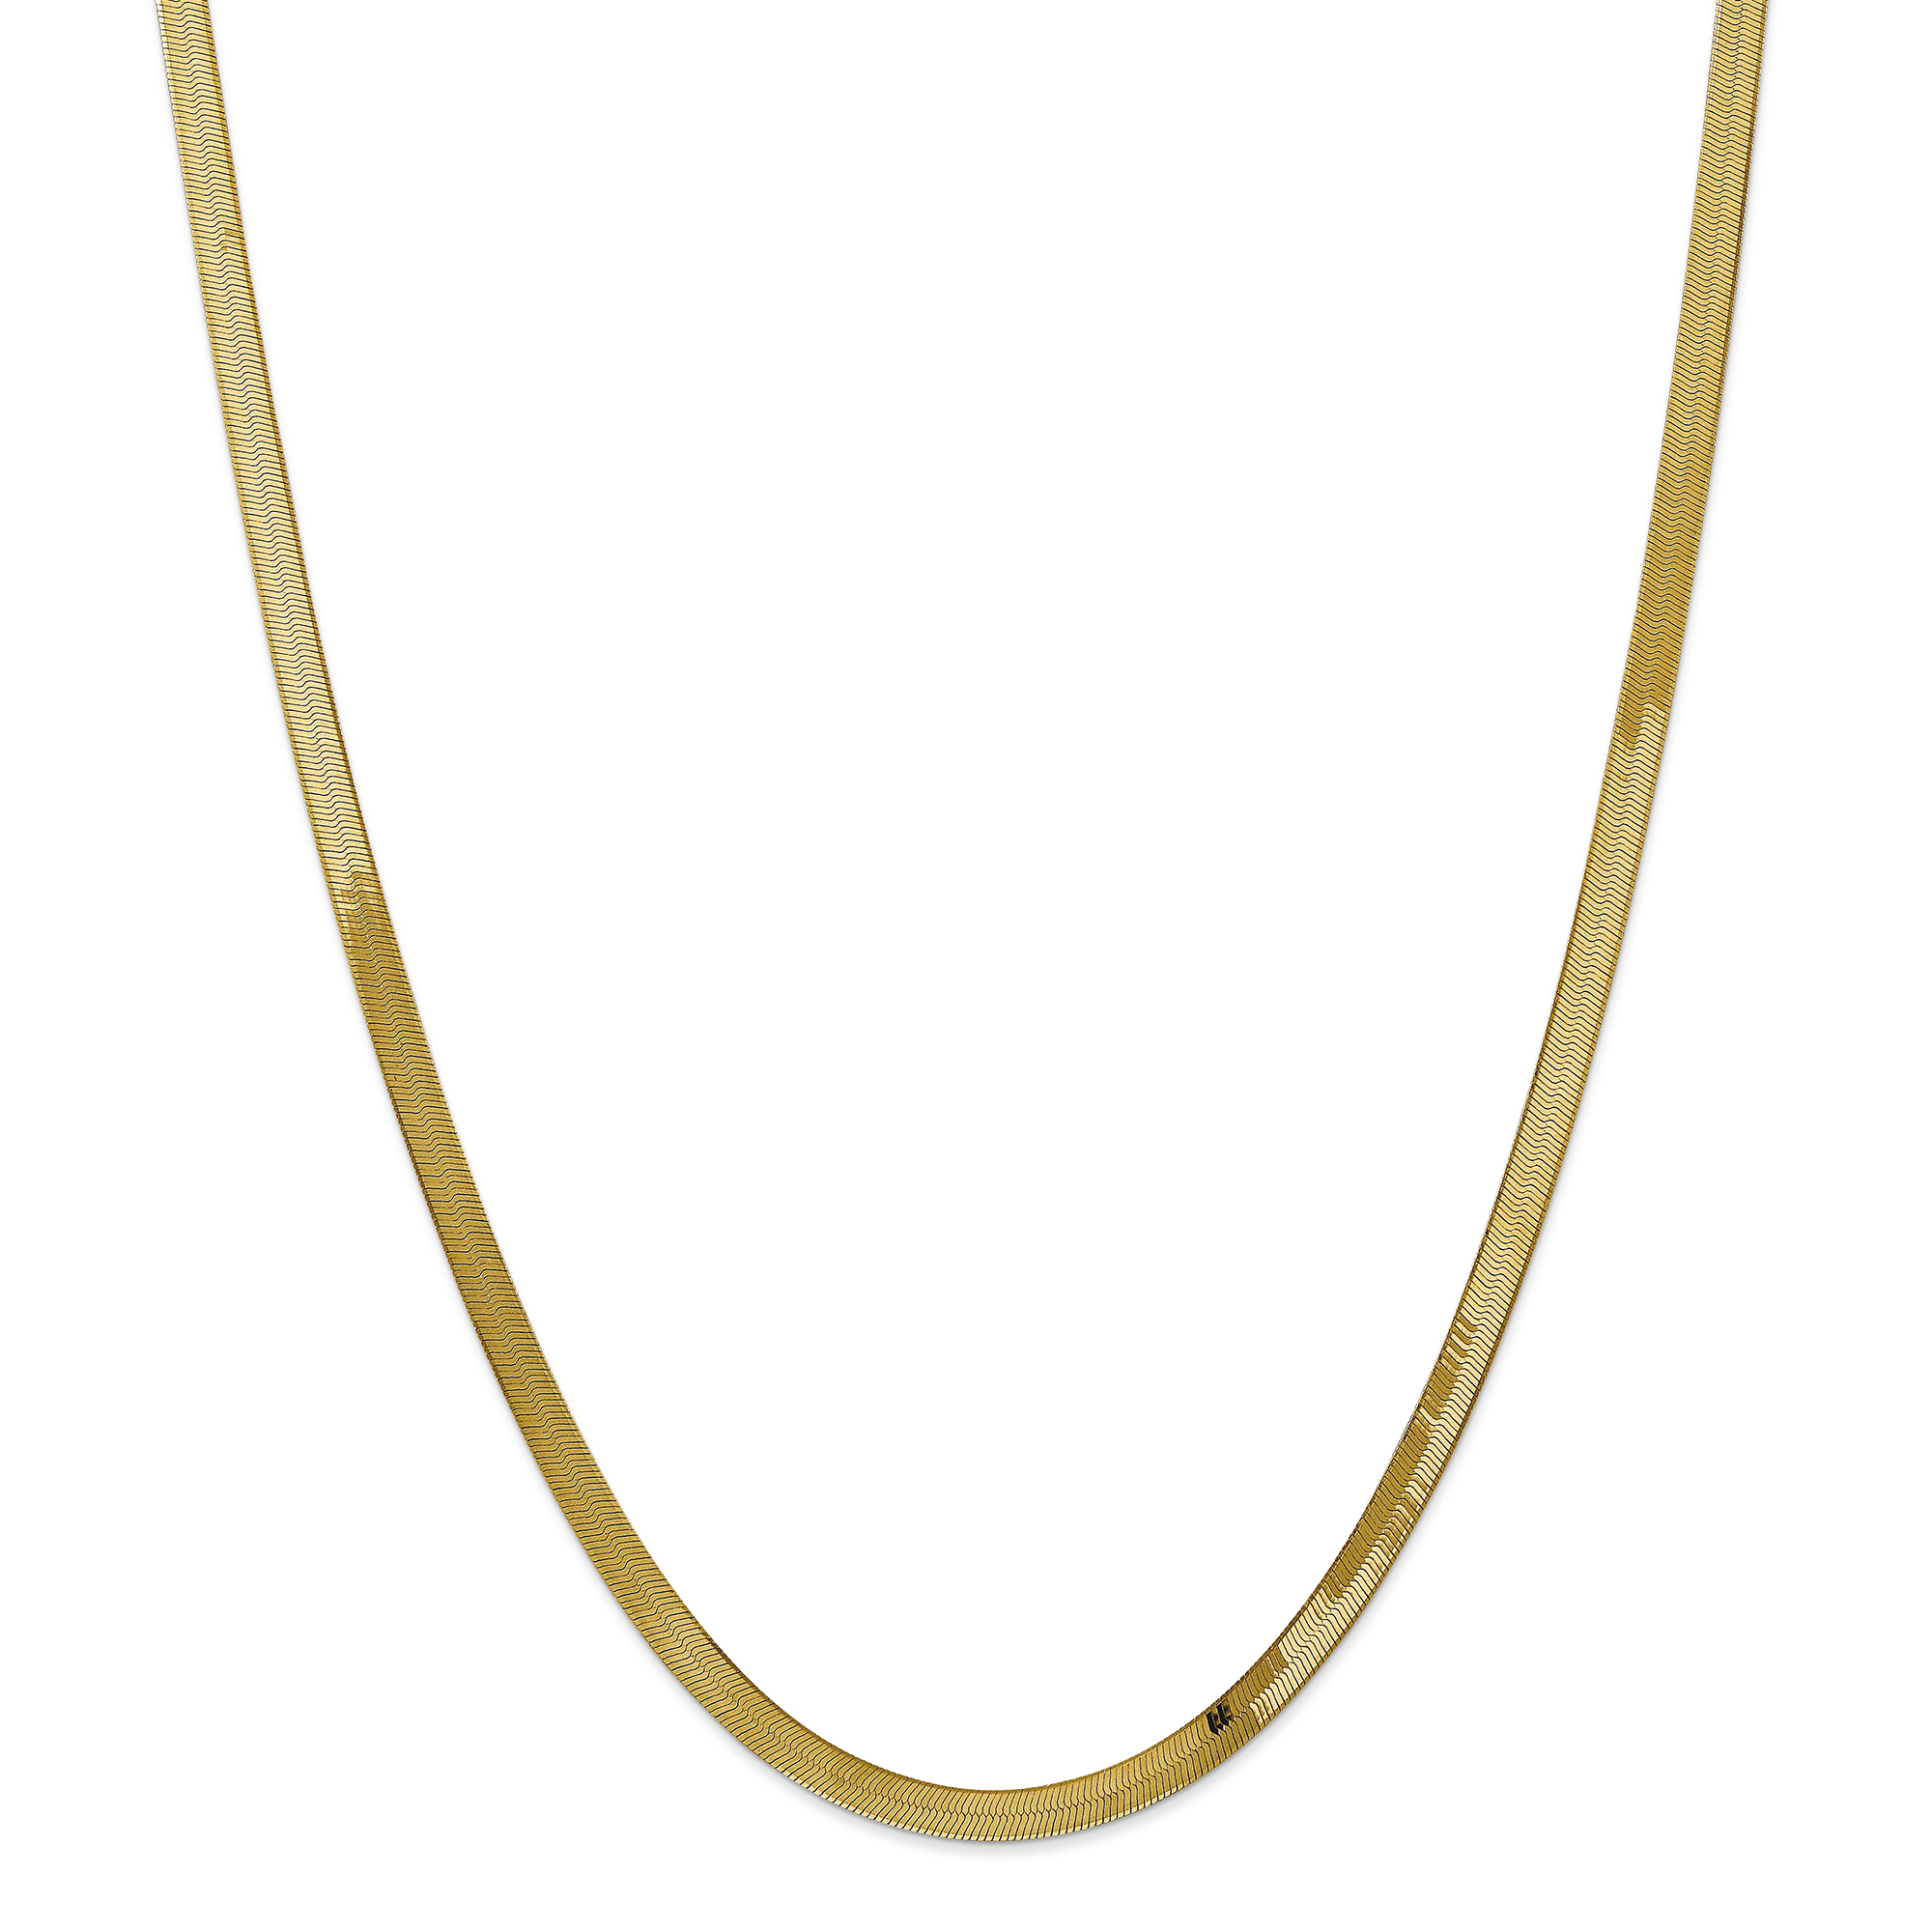 Diamond Necklace 18 Inch Gift Boxed Rhodium-plated Polished and satin Lobster Claw Closure White Ice Satin .01ct